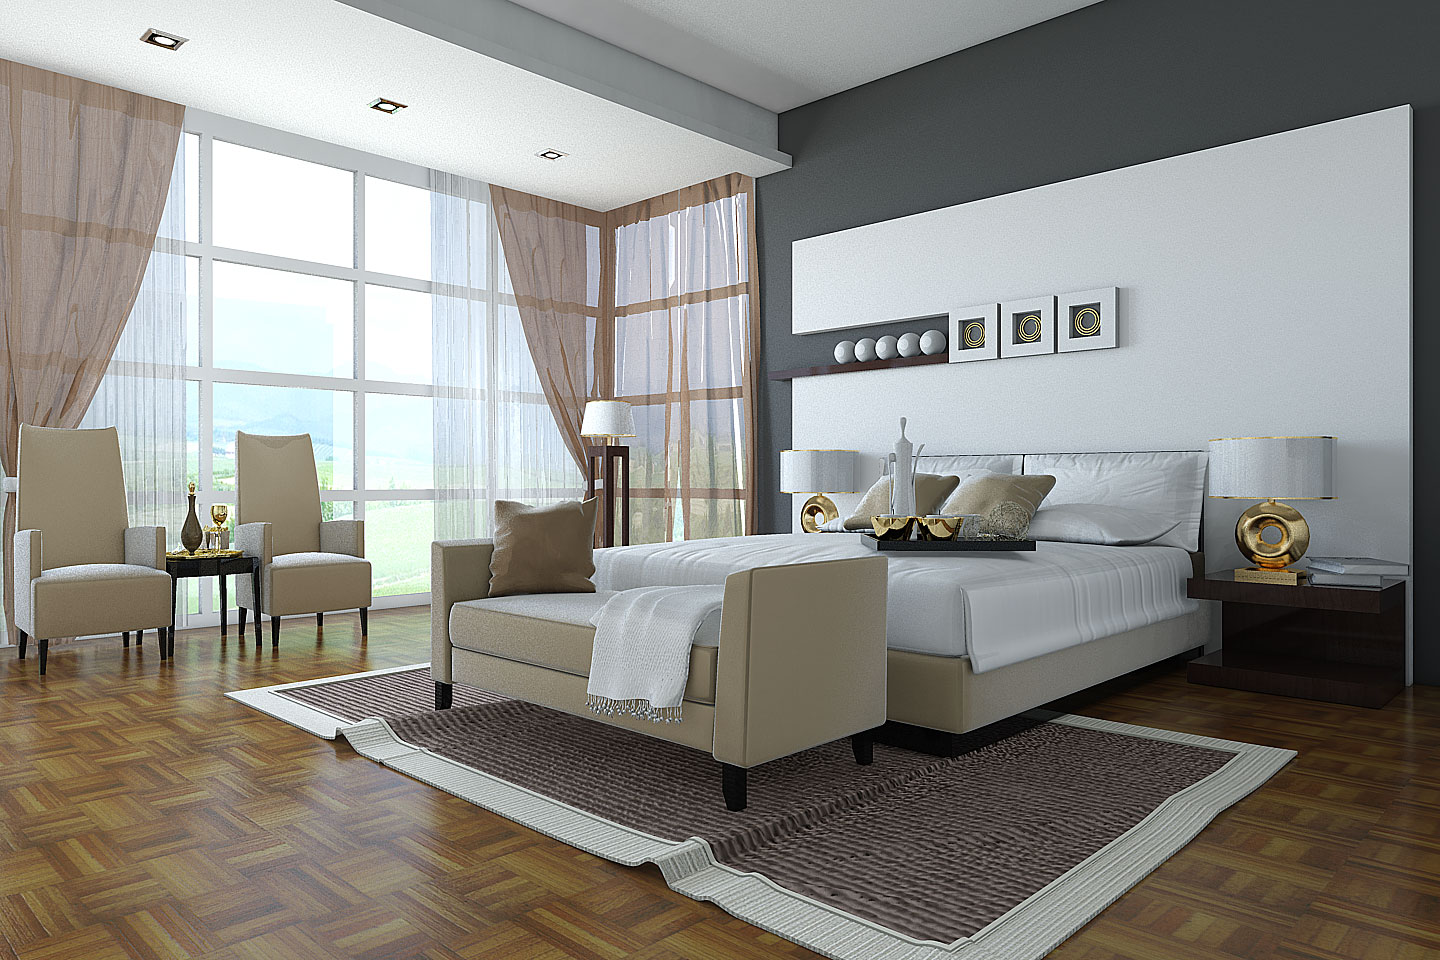 classic bedroom design - Bedroom Design